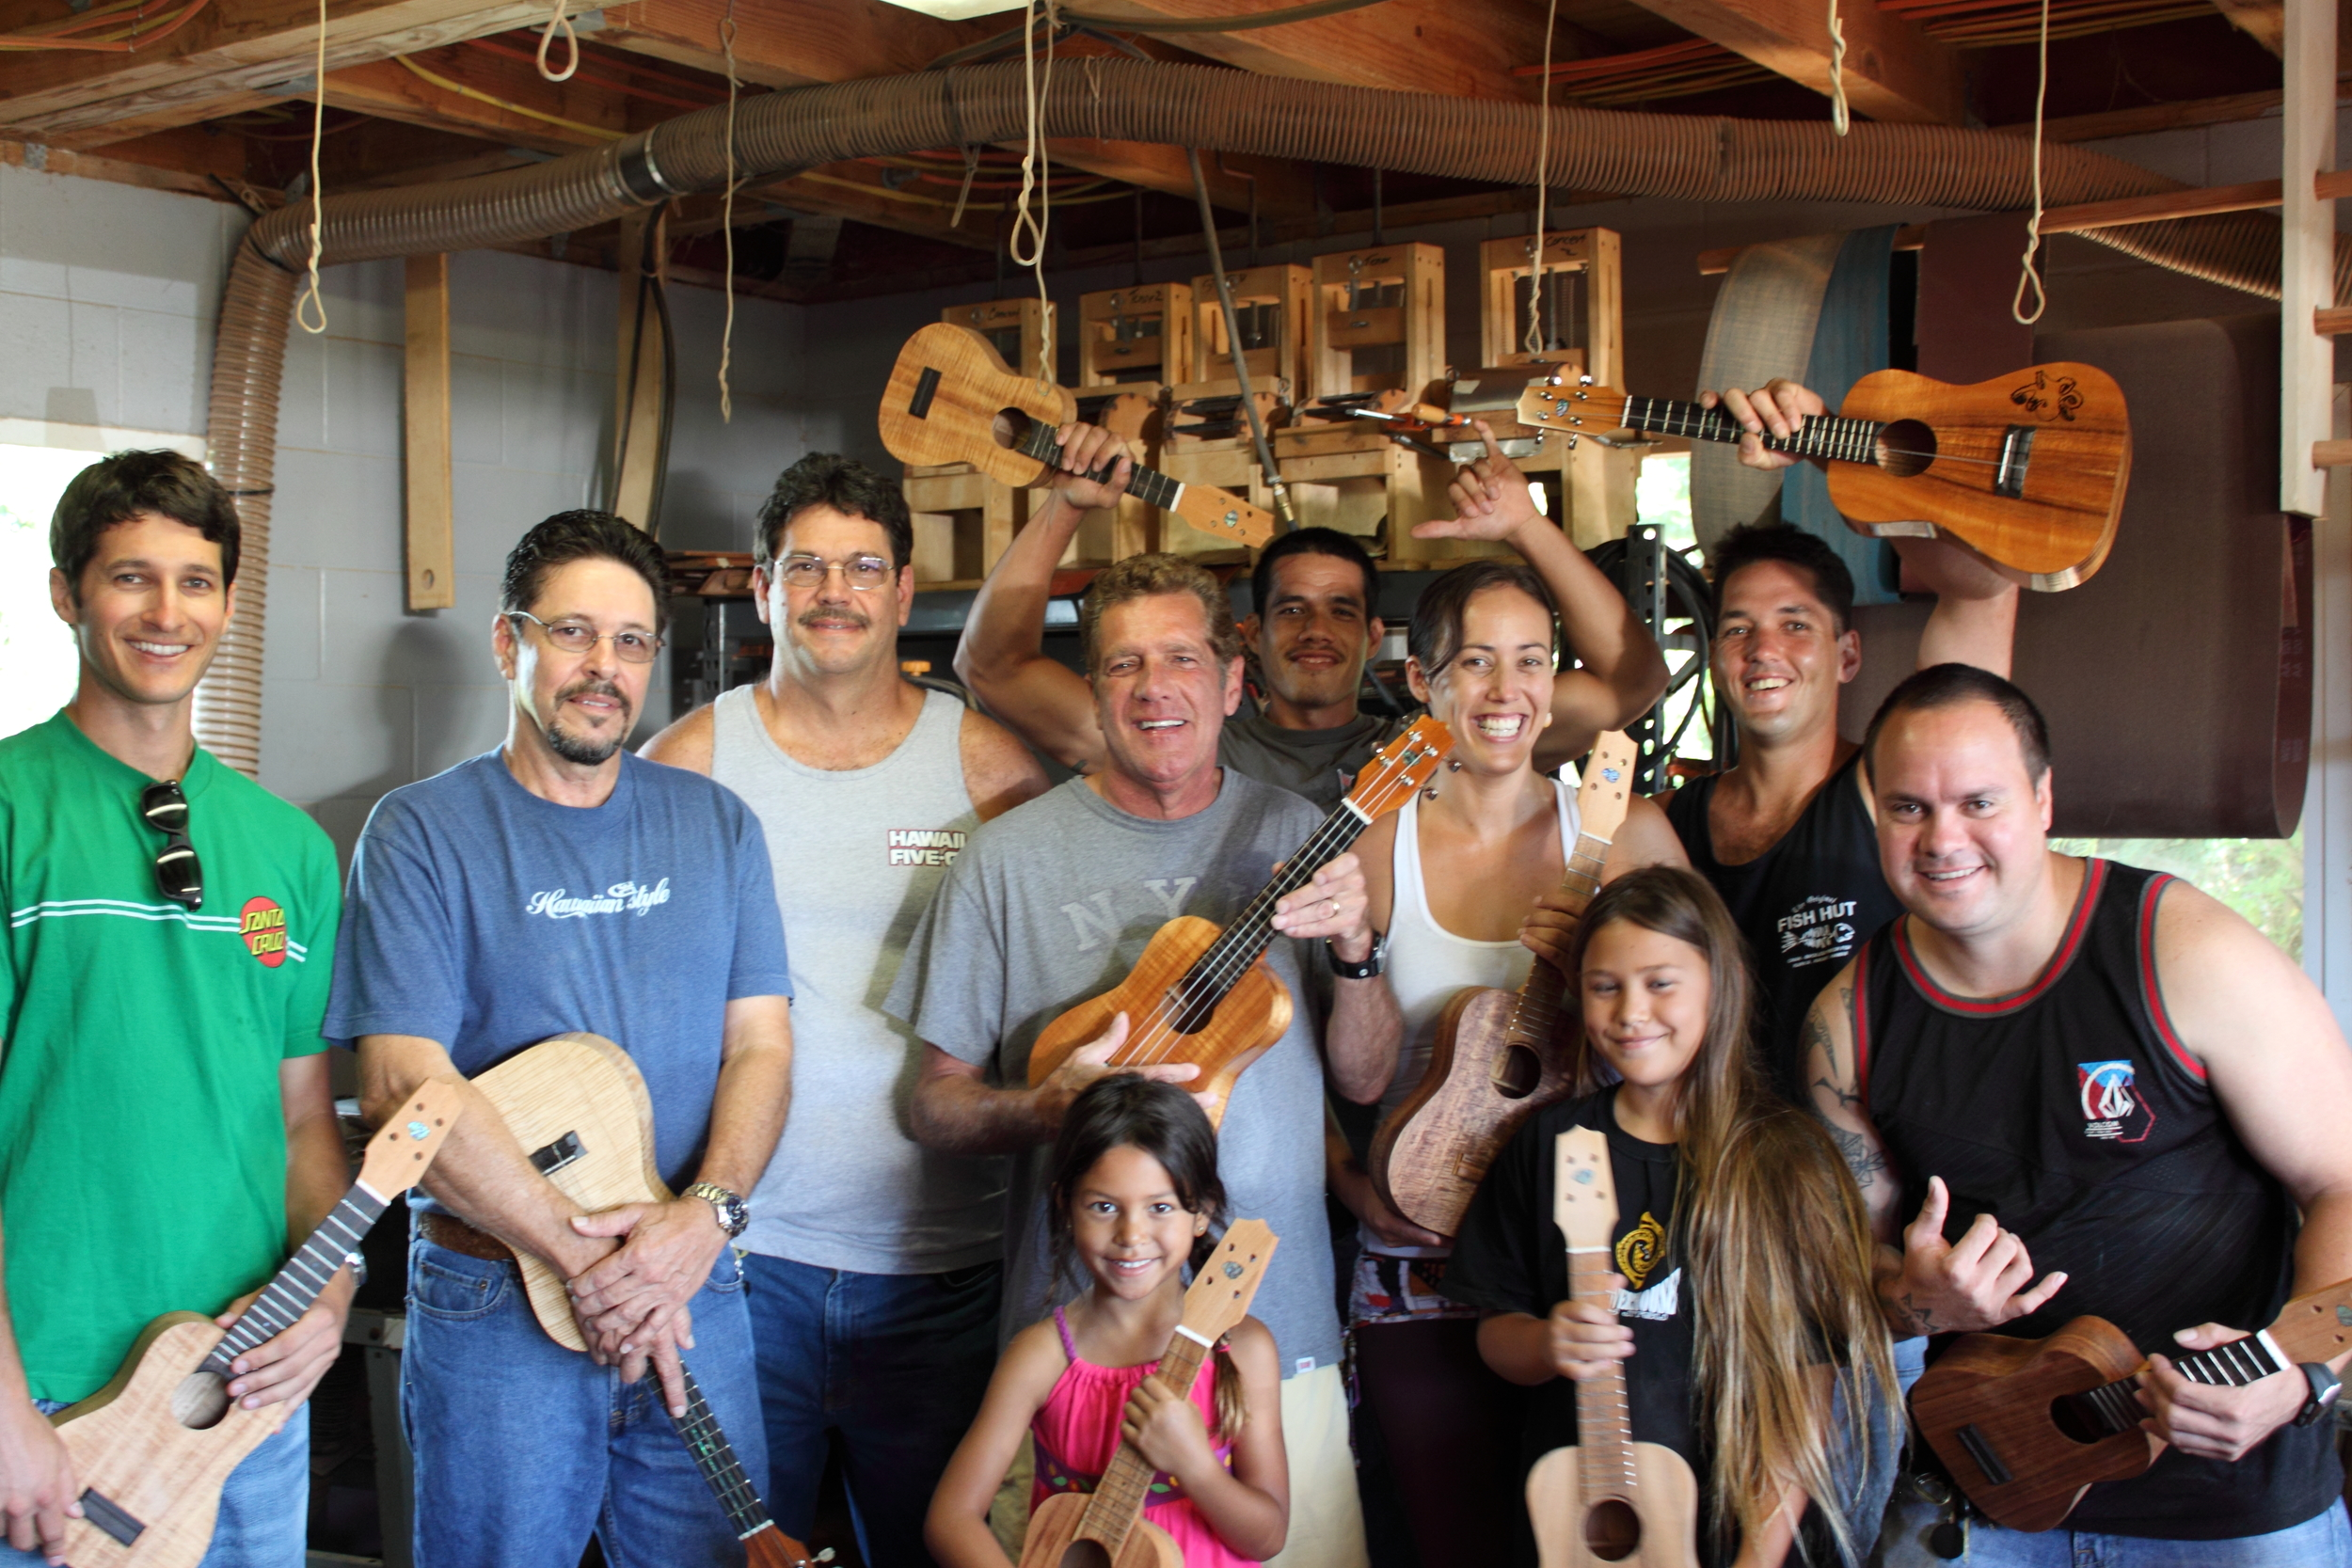 From left to right Tobby, Steve Rapozo, Raymond Rapozo, Glenn Frey, Tobys Daughter, Sarah Rapozo, Seychelle Rapozo, Lucas, James Langtad, Alika Youn.